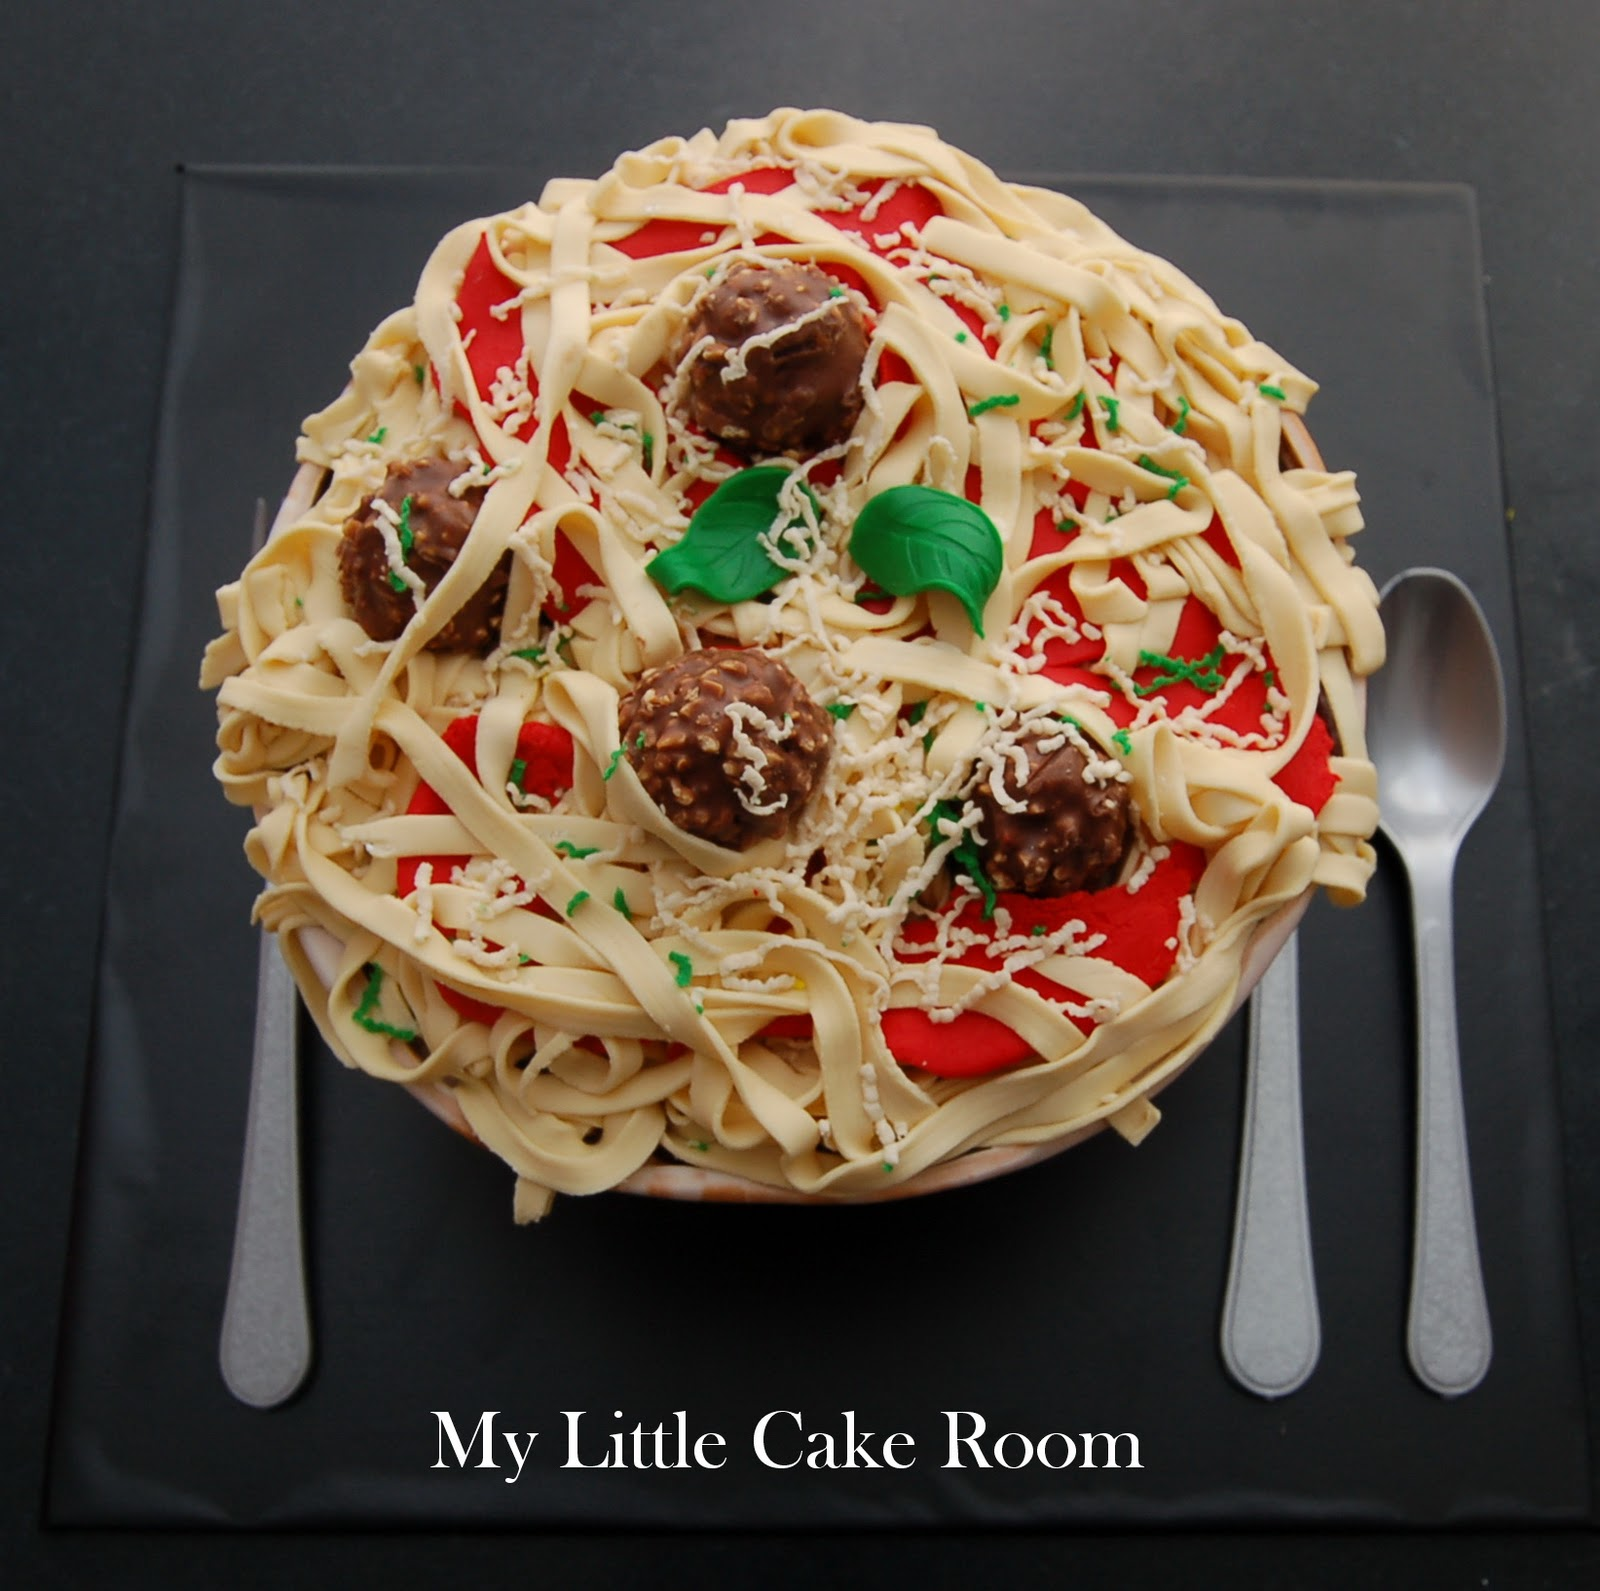 My Little Cake Room: Today's special: Pasta with meatballs cake